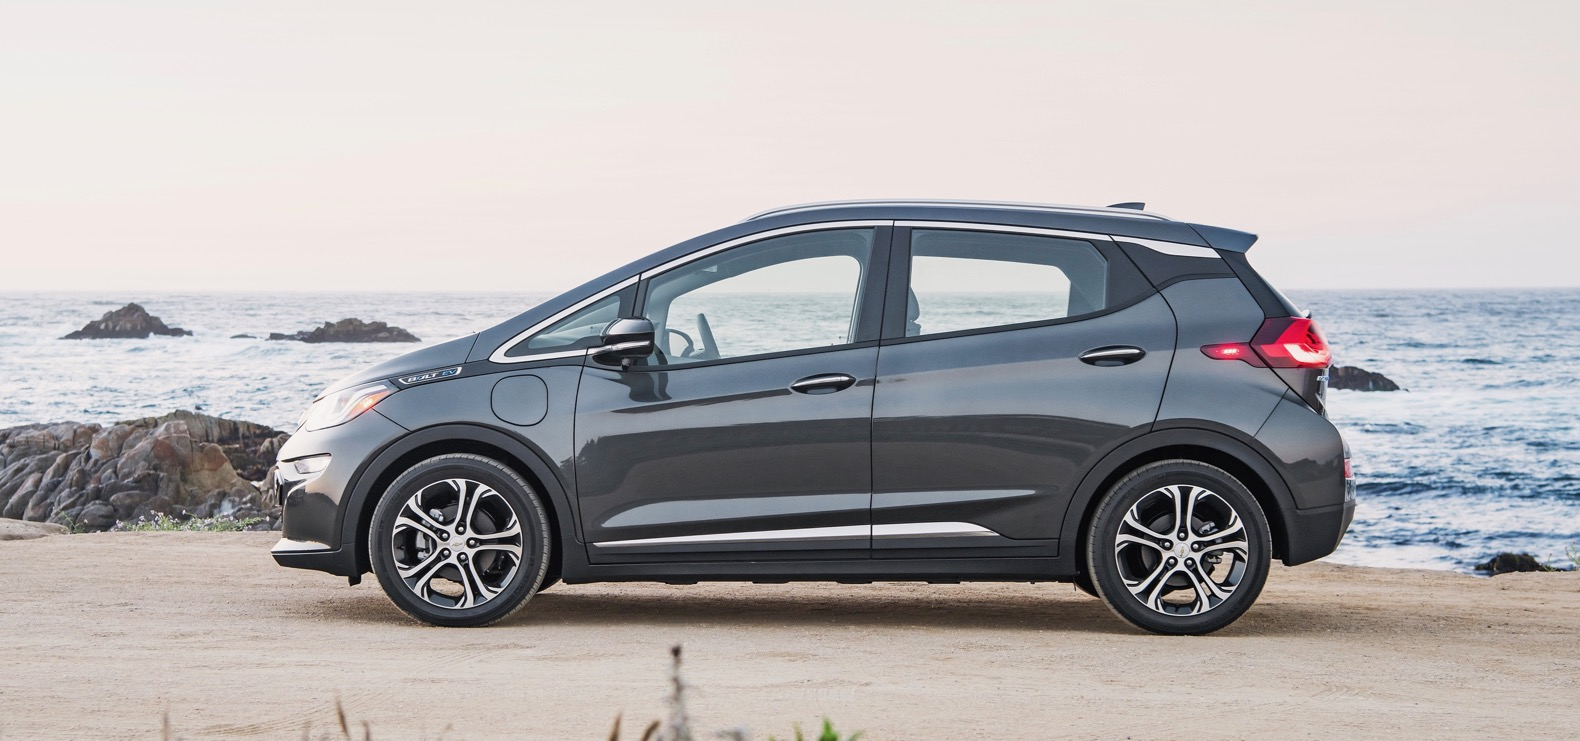 66 The Best 2019 Chevy Bolt Performance and New Engine